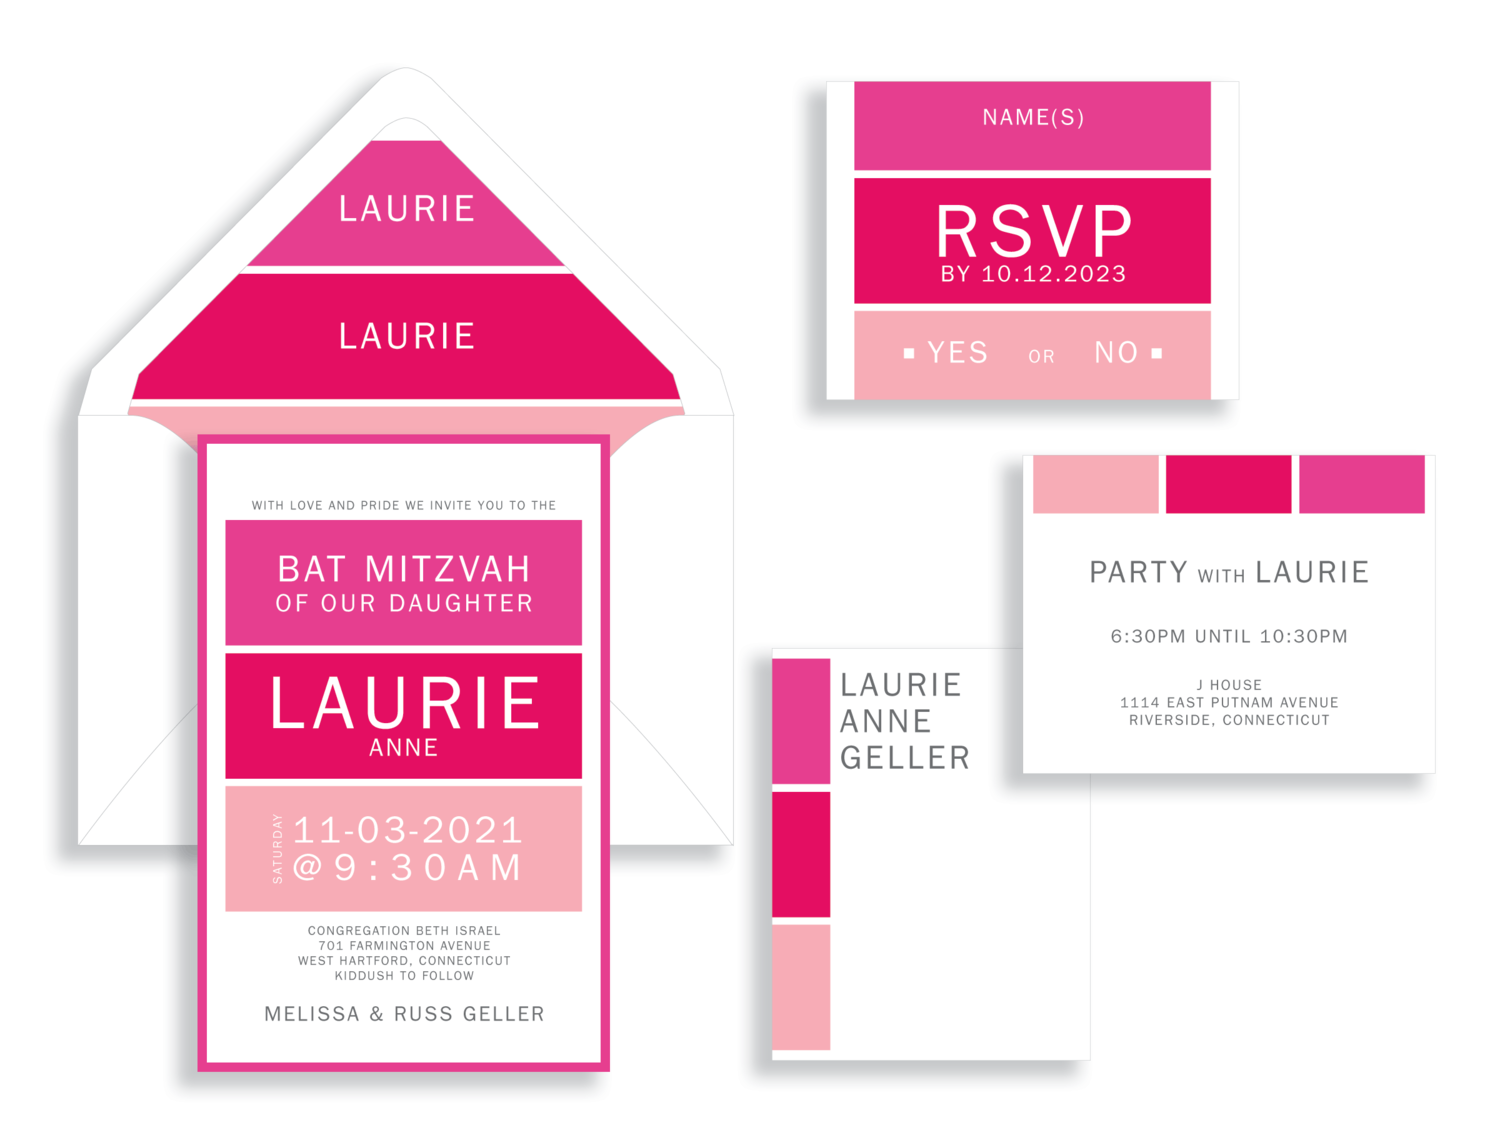 Laurie magenta blocks bat mitzvah invitation in the Washington DC Metro area from Staccato.  Customize colors and layers!